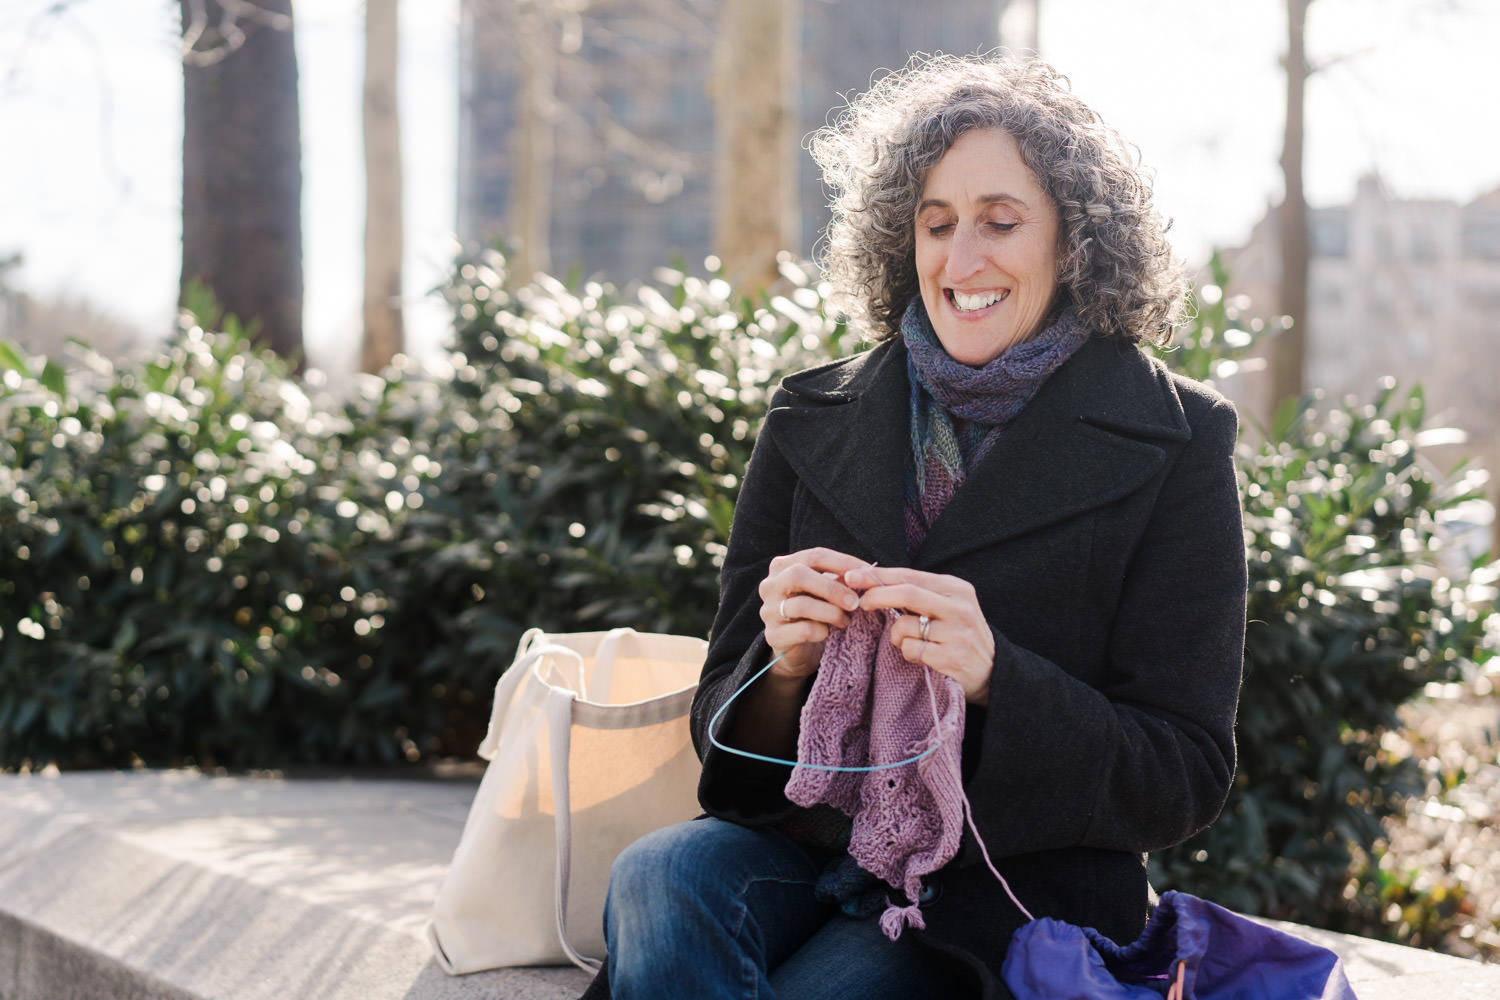 A woman sits in the park and knits.